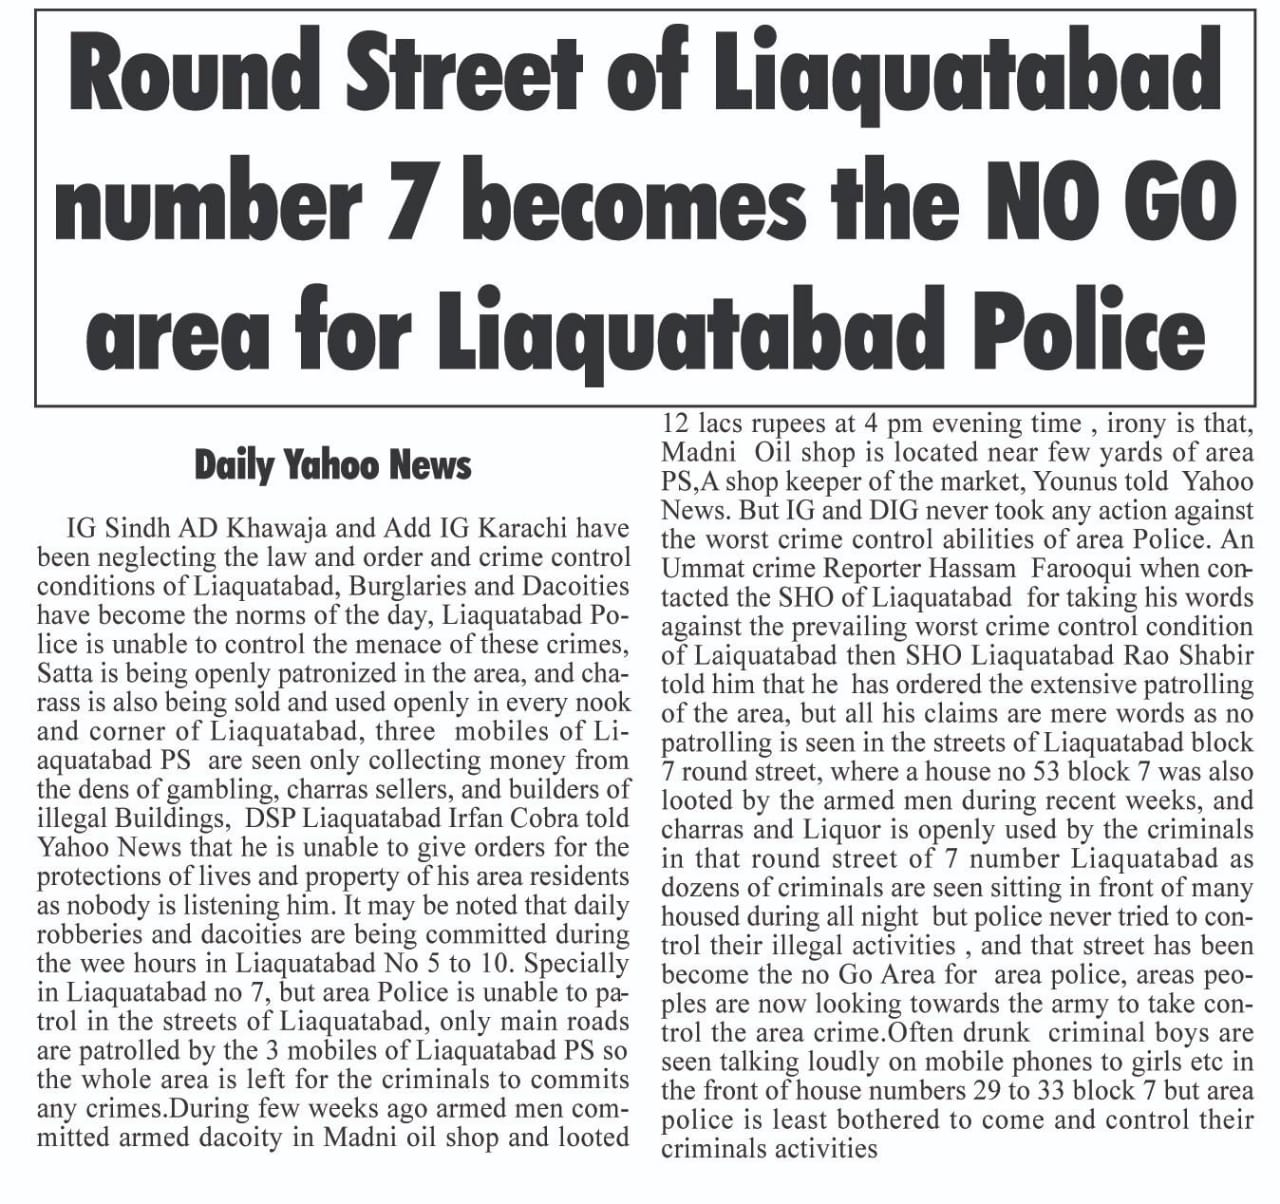 Laiquatabad Block 7 Babu street becomes a No  Go Area for area police